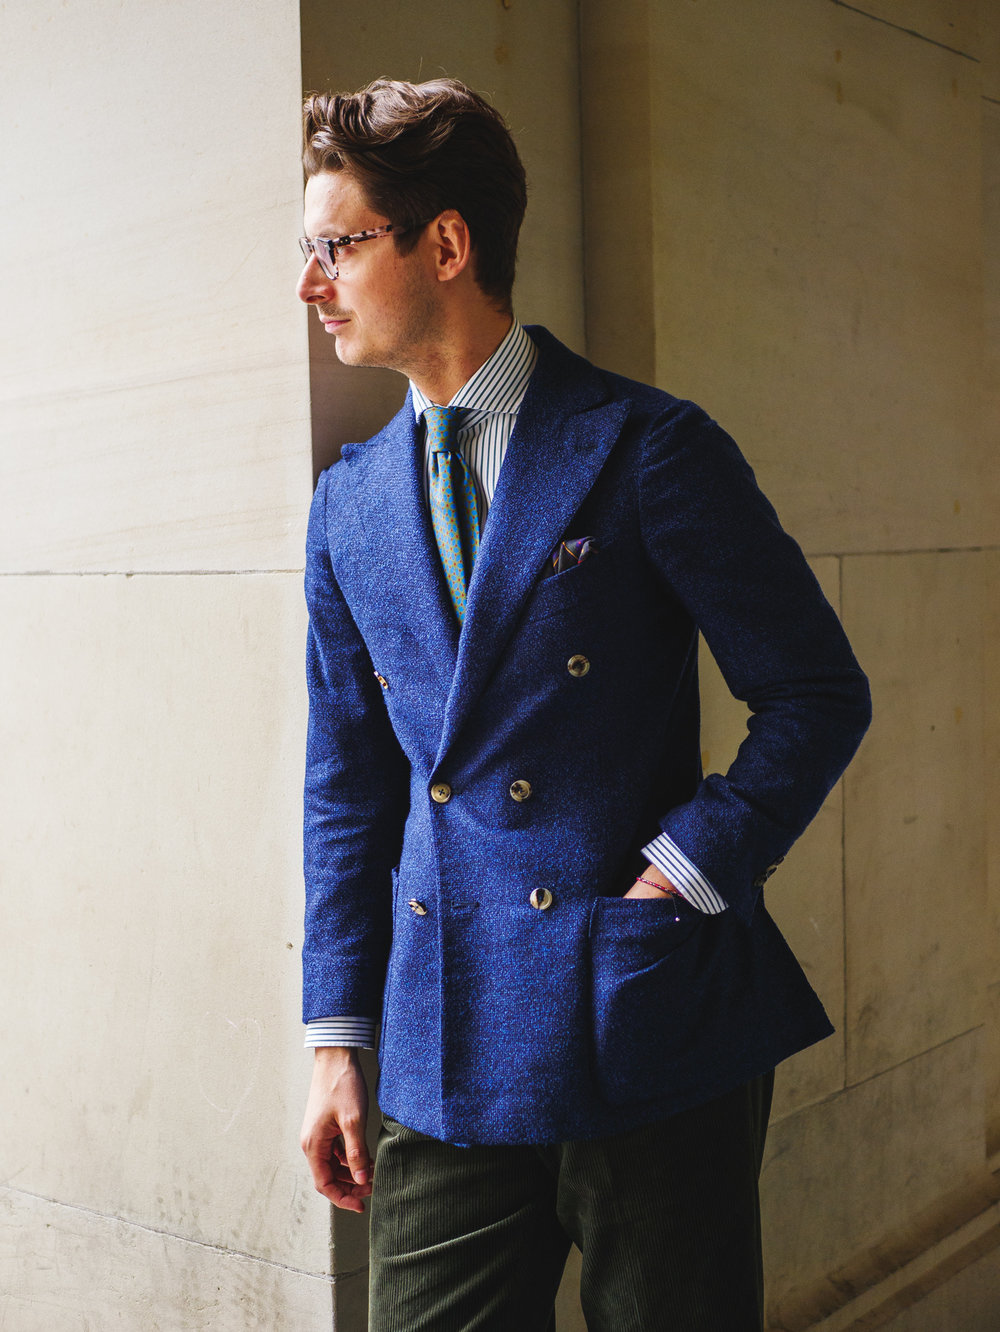 MTM Calder Jacket, paired with MTM Vanacore Napoli Shirt, Viola Milano Tie, and Chad Prom Trousers. All available at Calder Sartoria.